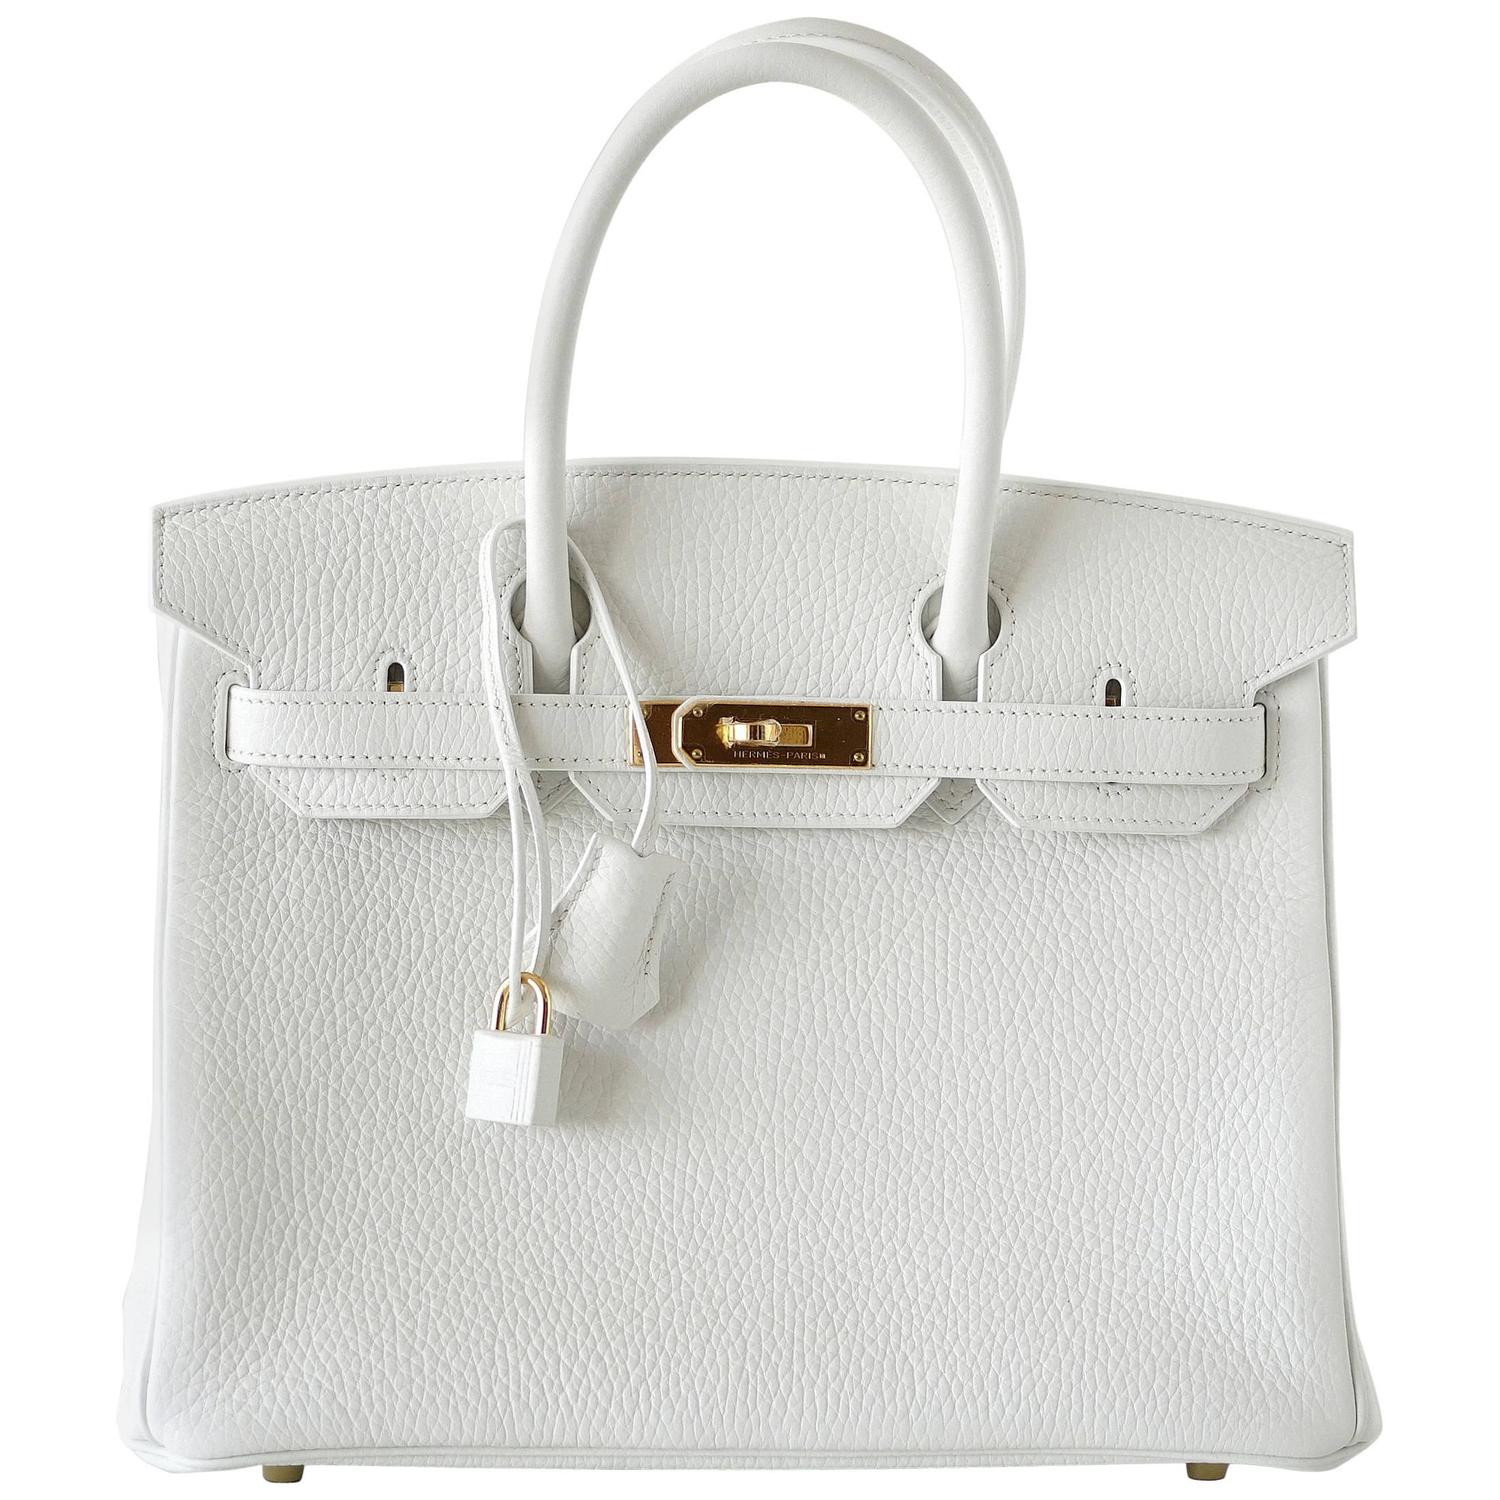 3d423feb3616 ... discount code for hermes birkin 30 bag rare white coveted beauty  clemence gold hardware rare at